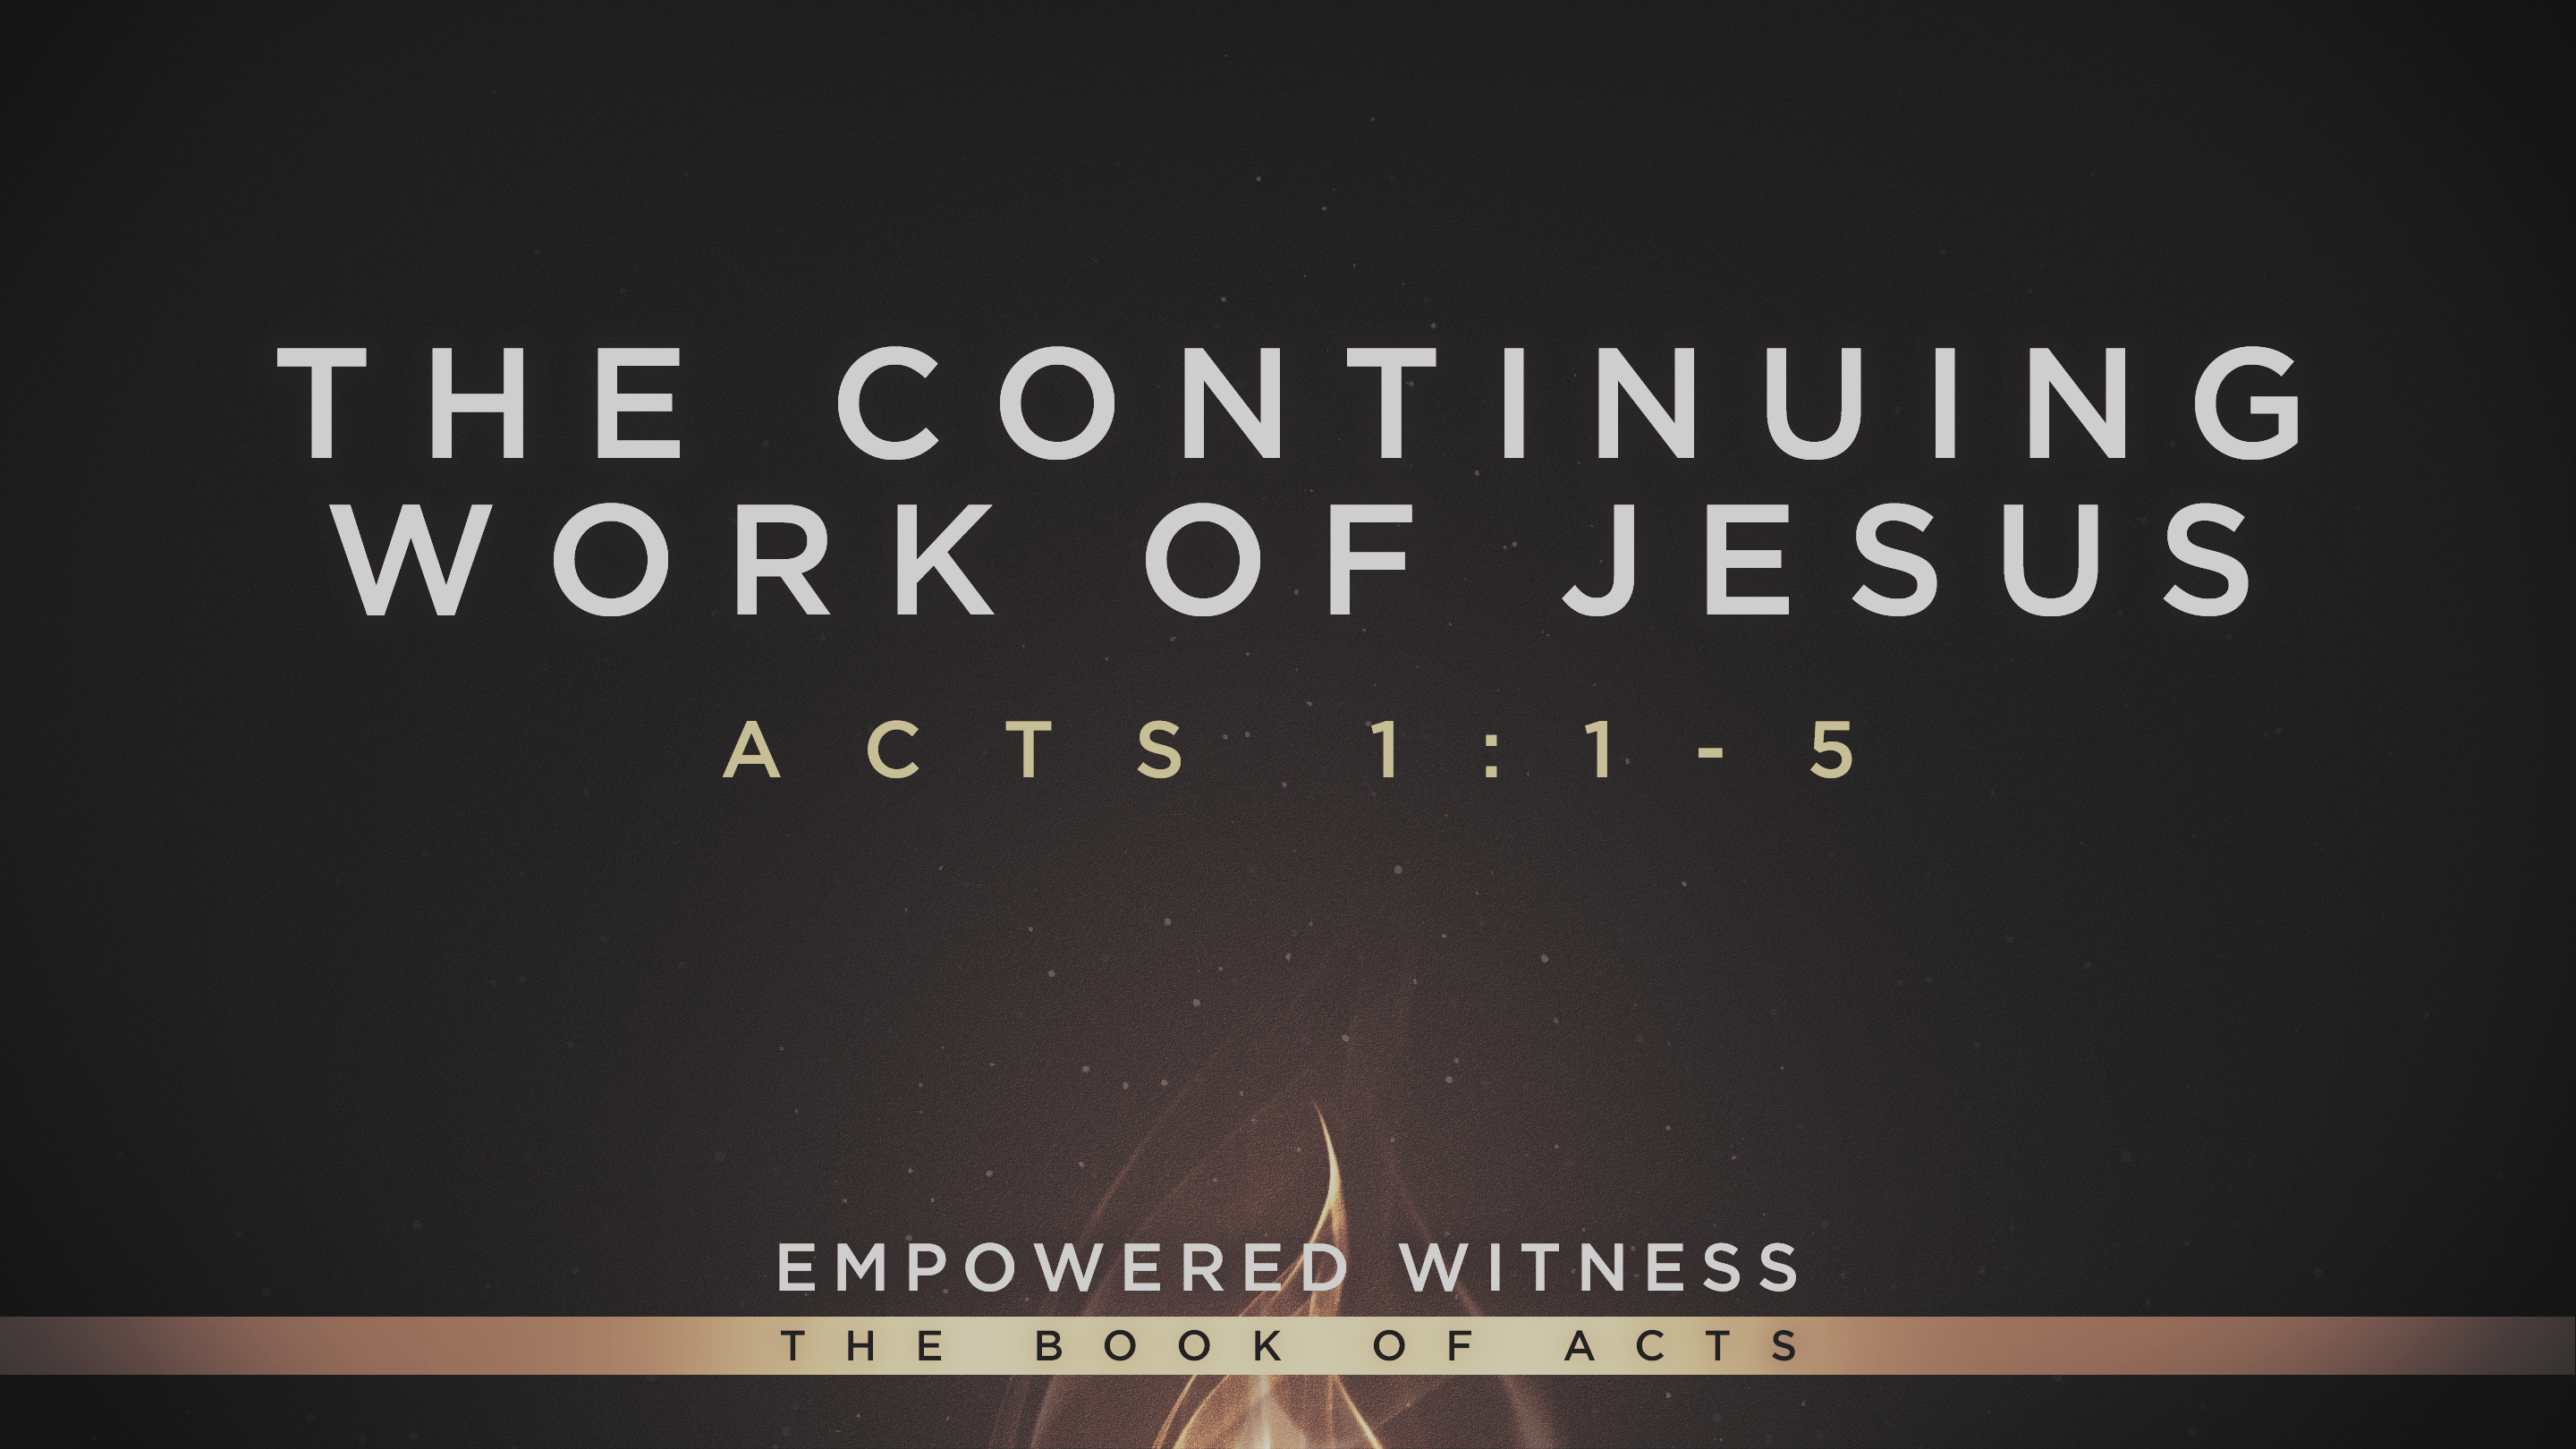 The Continuing Work of Jesus